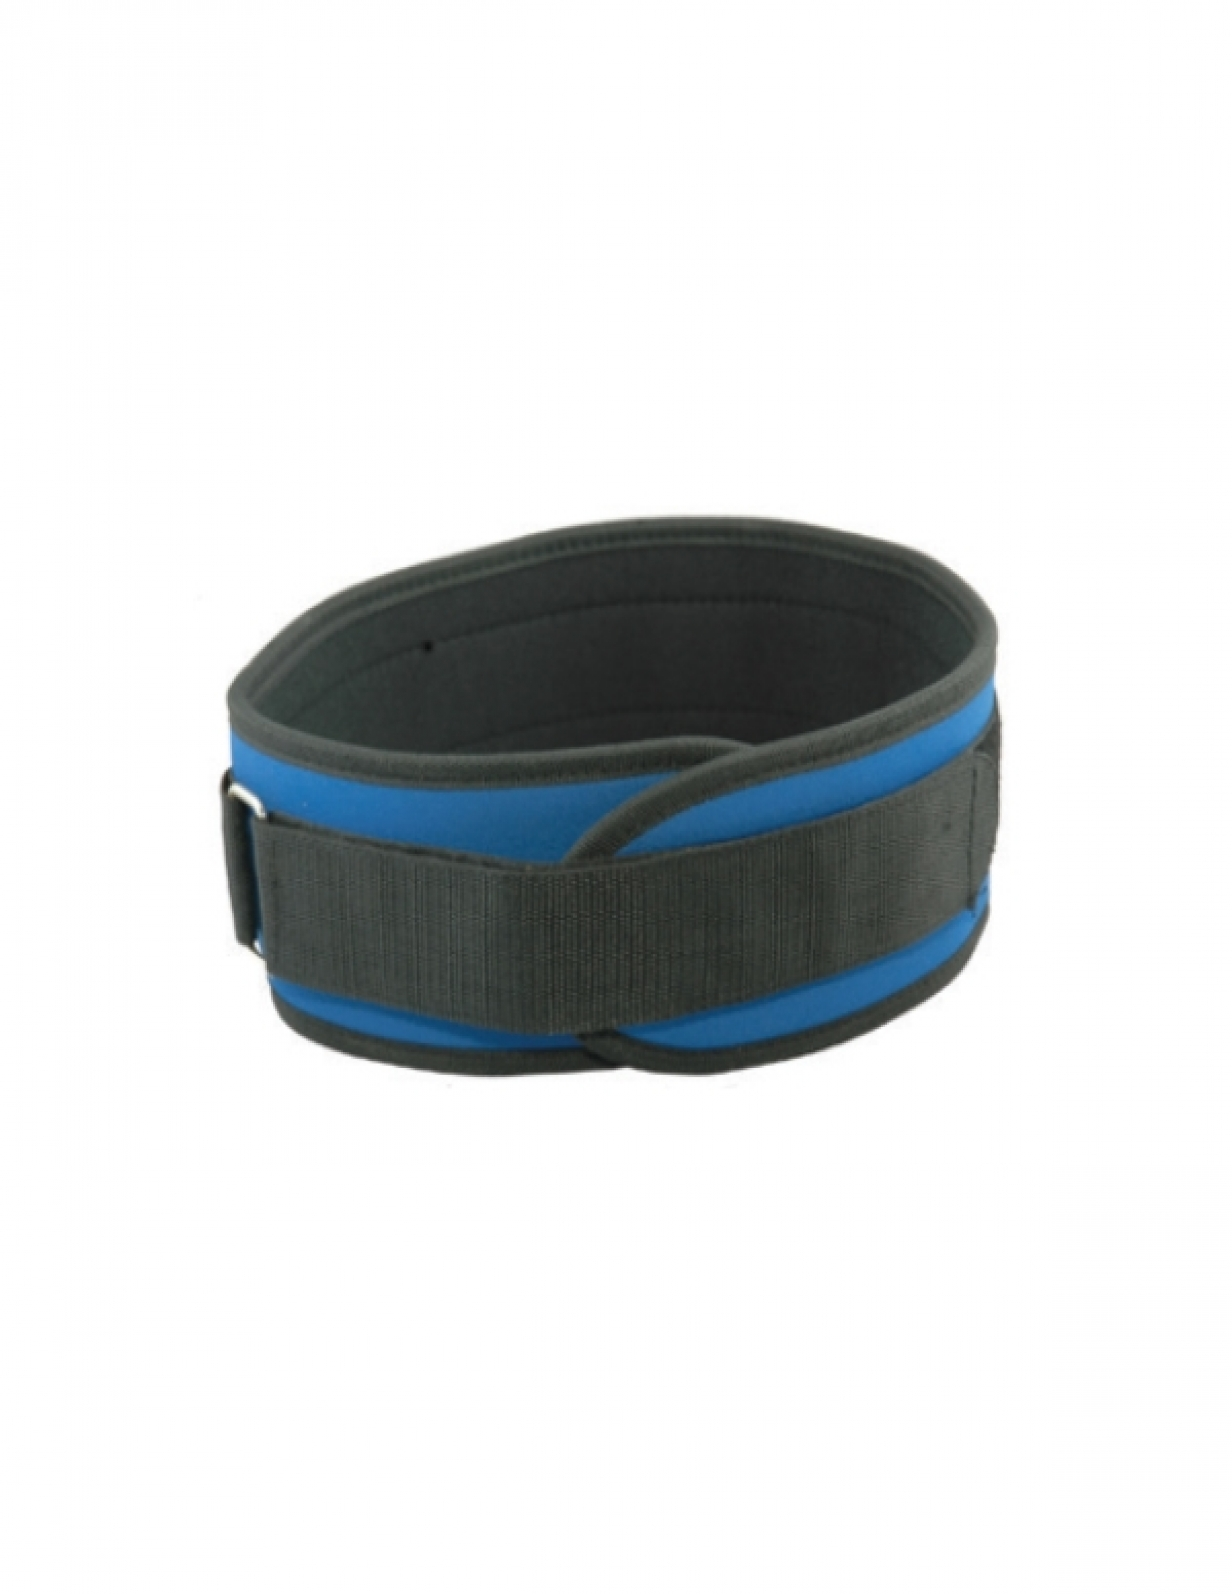 W 4133 WEIGHT SLIM BELT